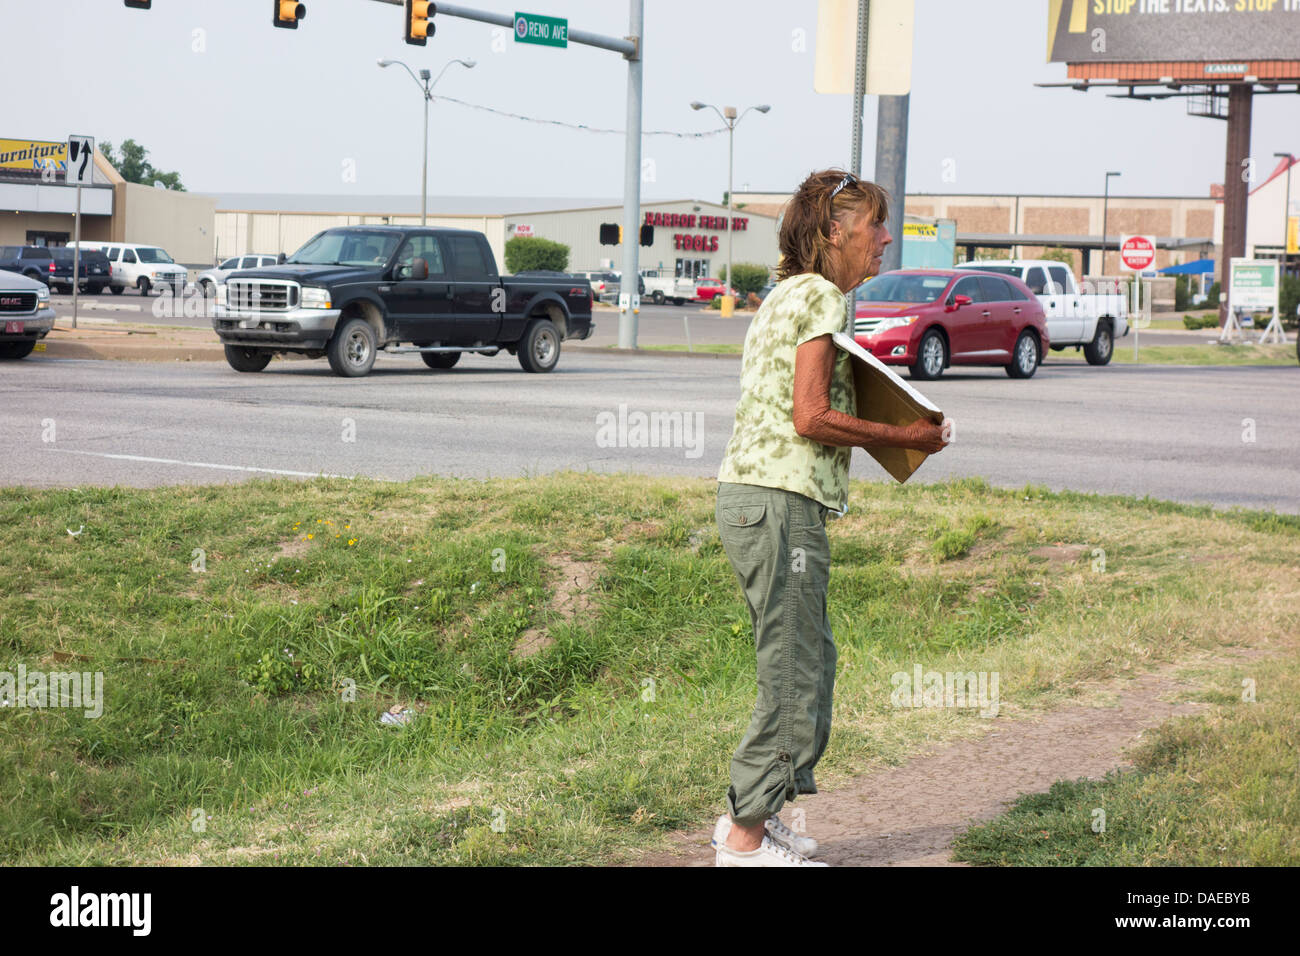 An old, homeless woman holding a sign begs at an intersection in Oklahoma City, Oklahoma, USA in a high traffic - Stock Image